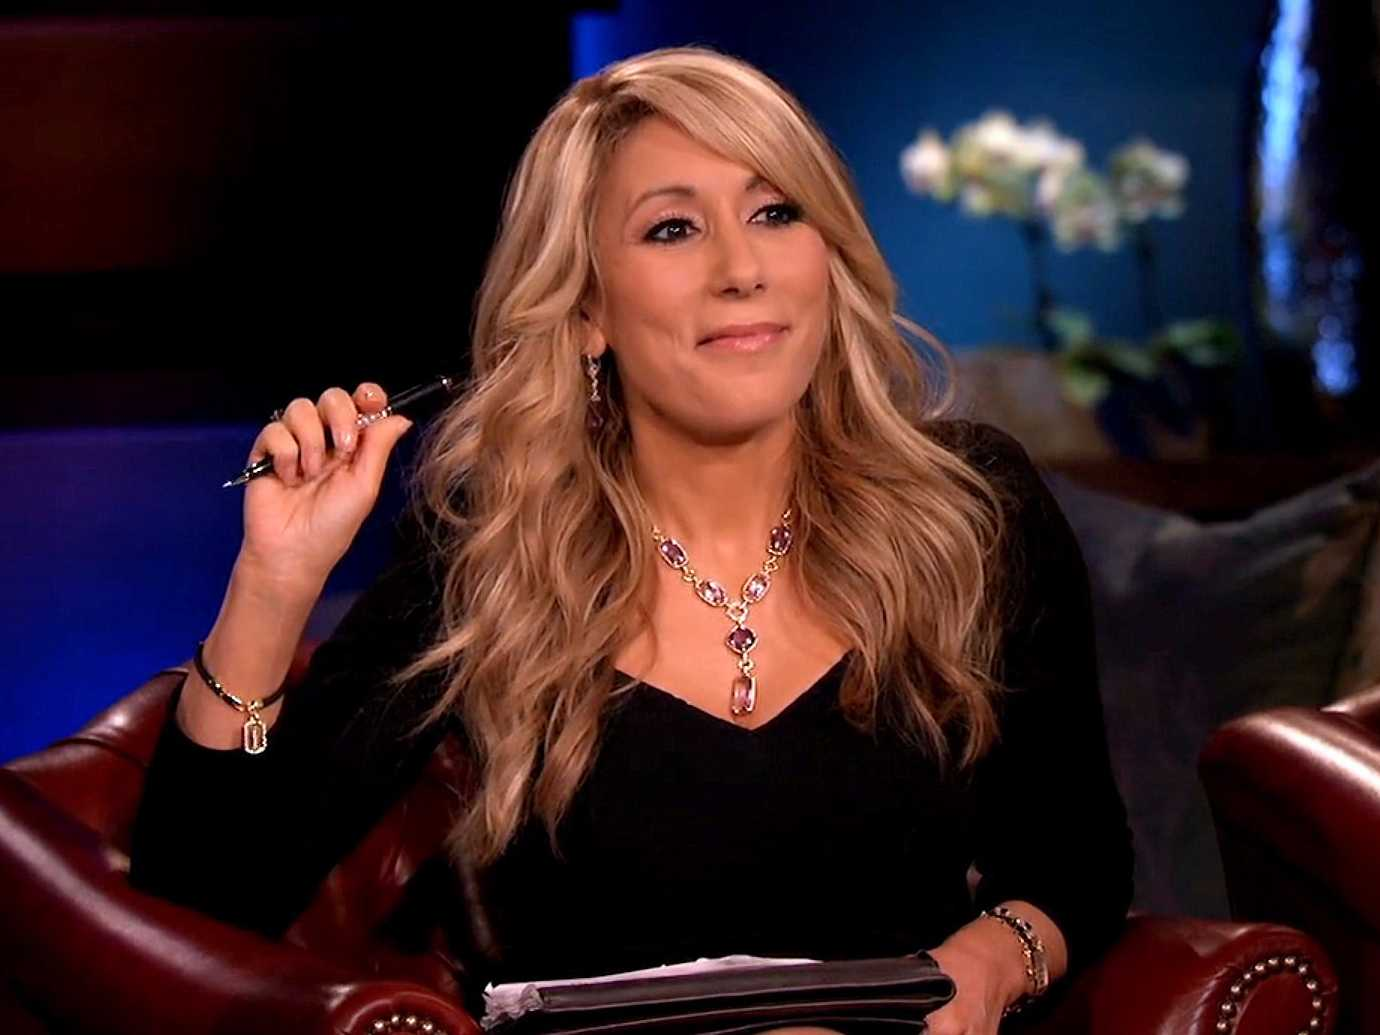 Lori Greiner smiles and holds up a pen while sitting in a chair on Shark Tank